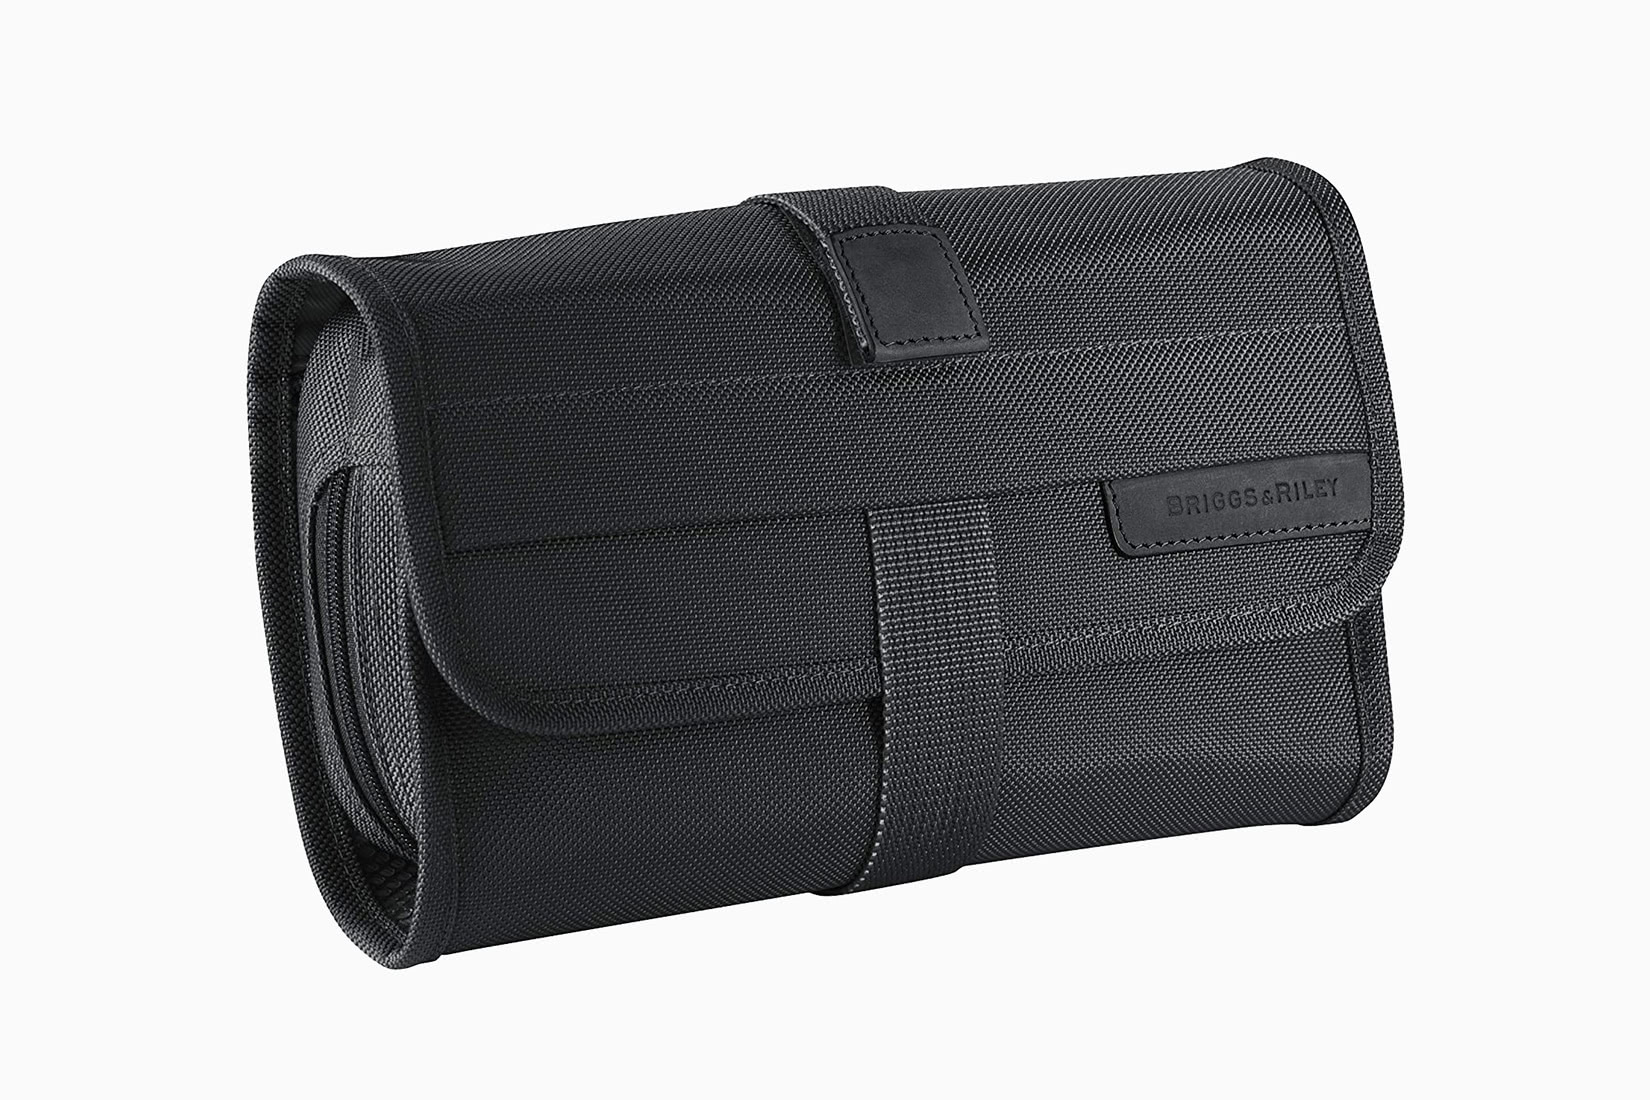 best dopp kit men small briggs riley review - Luxe Digital